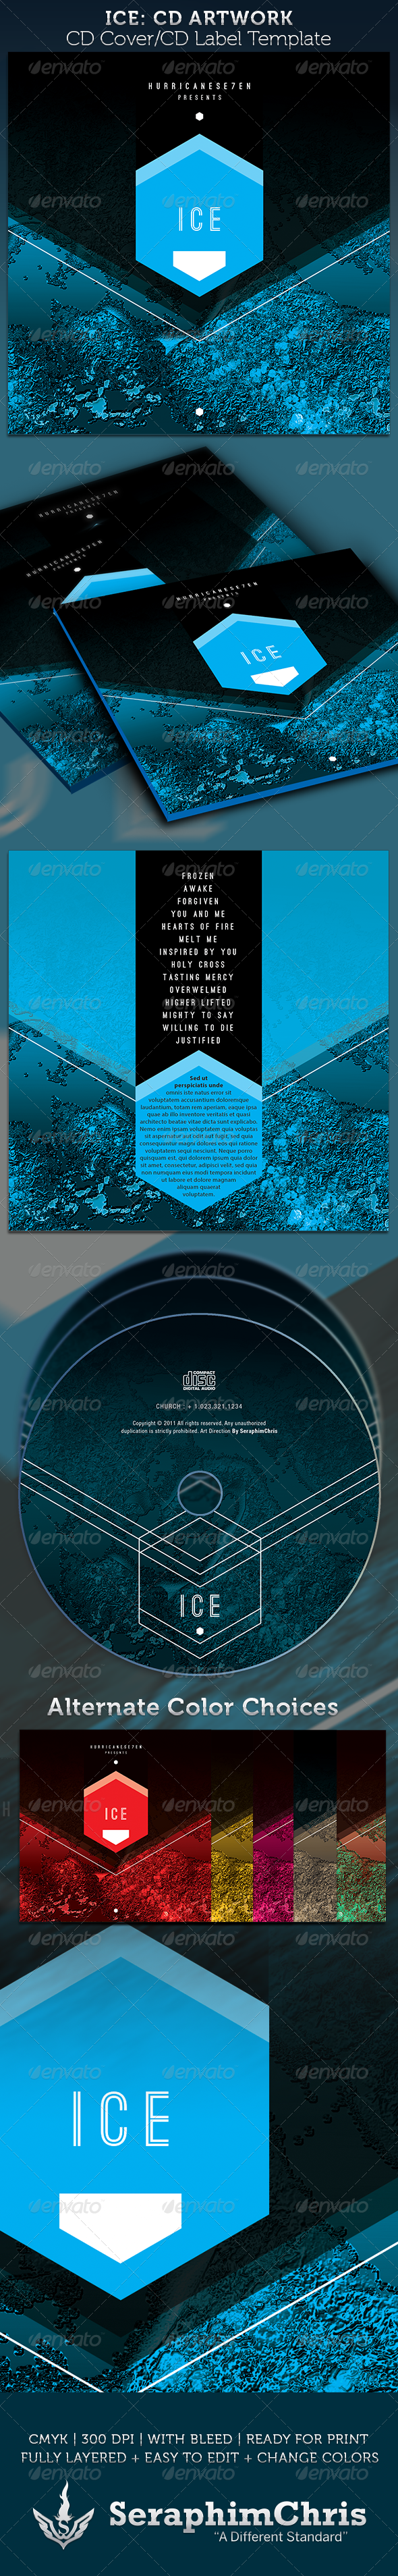 GraphicRiver ICE CD Cover Artwork Template 3738363